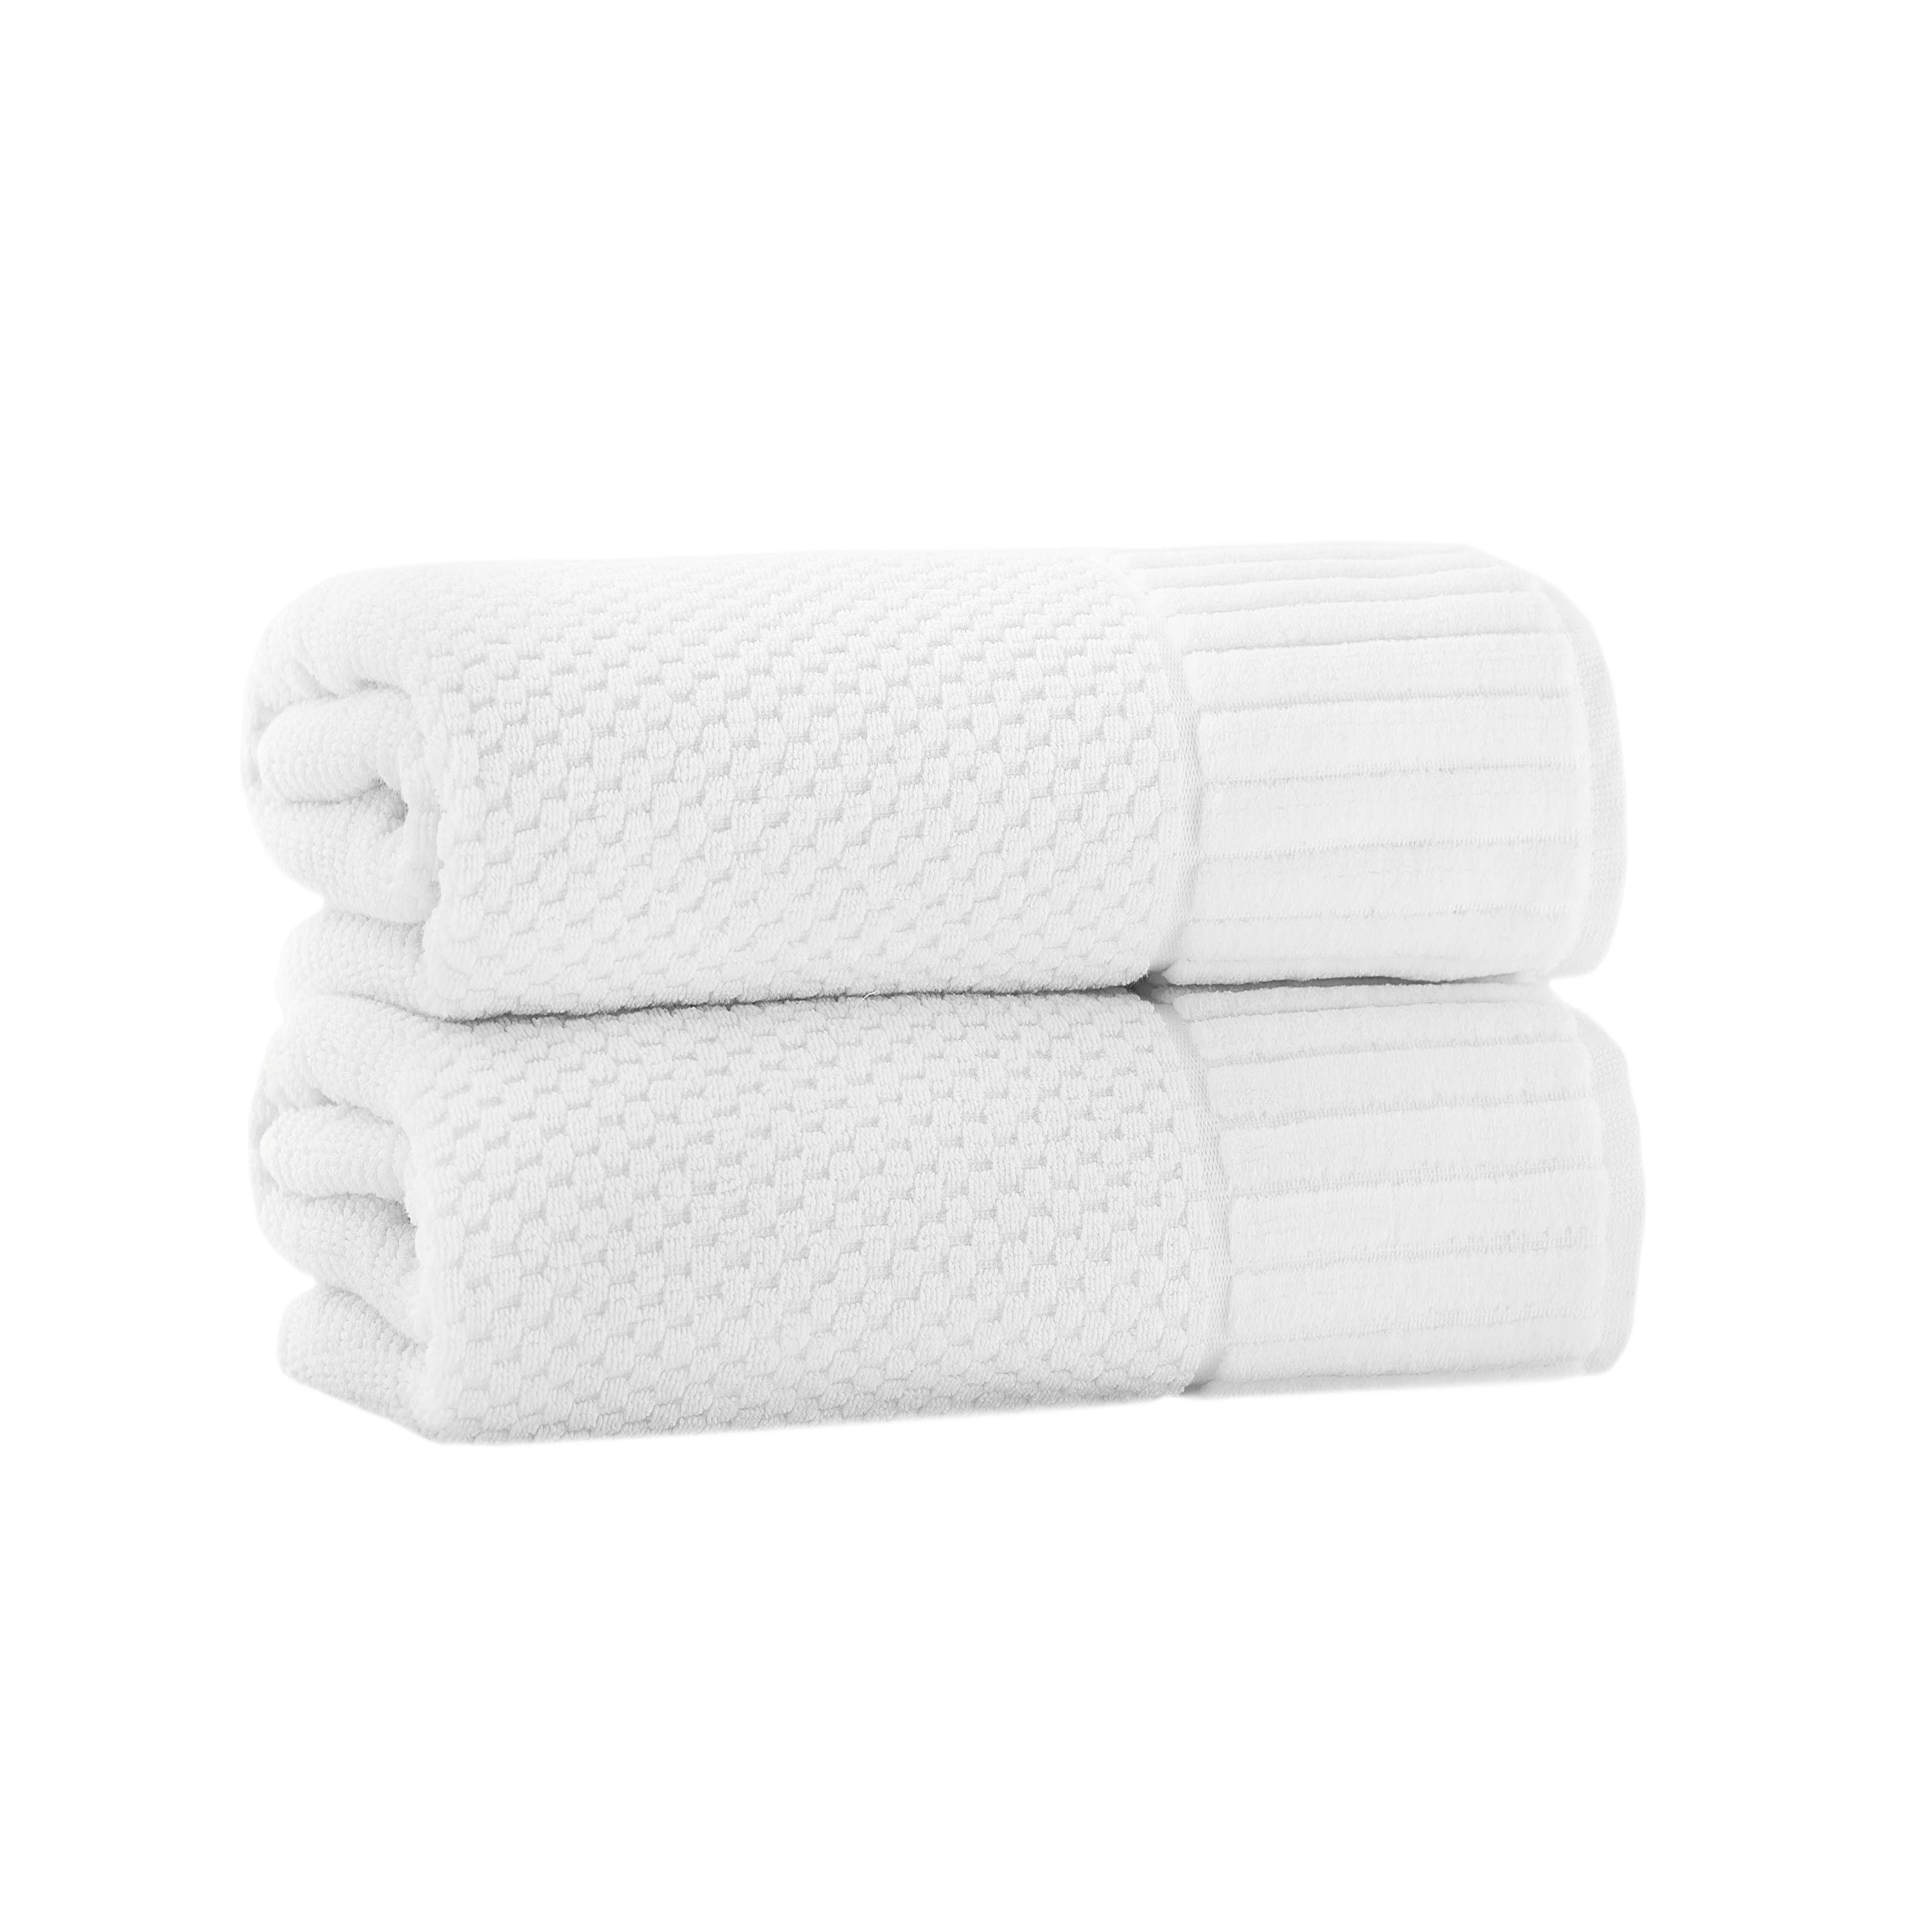 thumbnail 19 - The-Gray-Barn-Scharbauer-Bath-Towels-Set-of-2